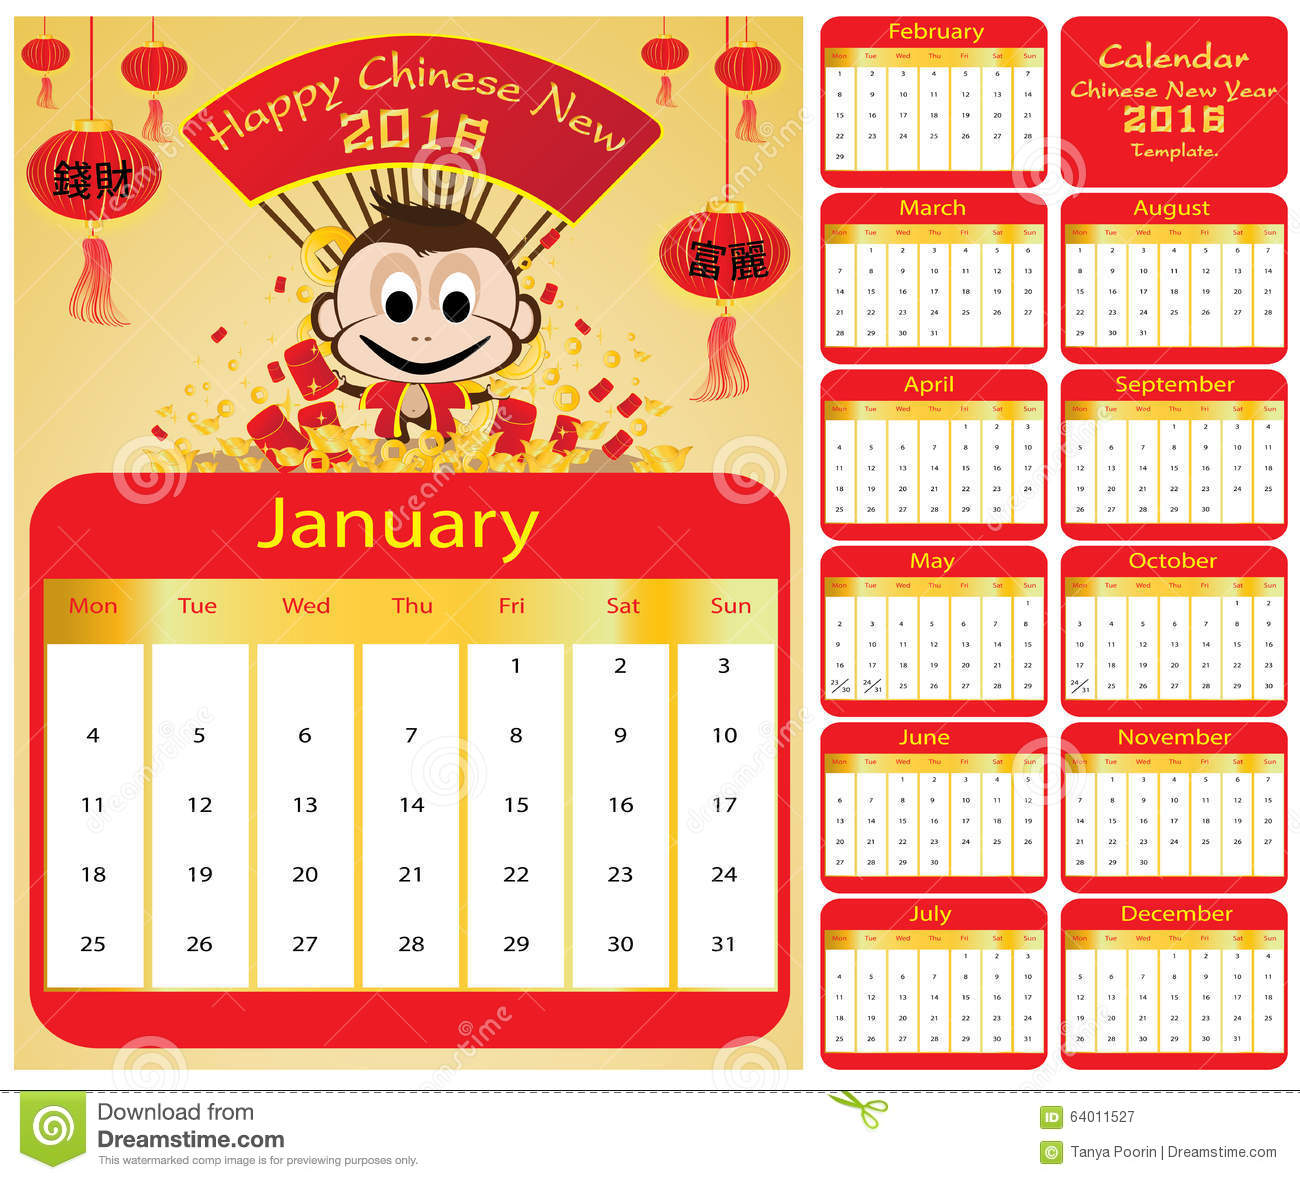 Calendar Chinese New Year : Calendar happy chinese new year template stock